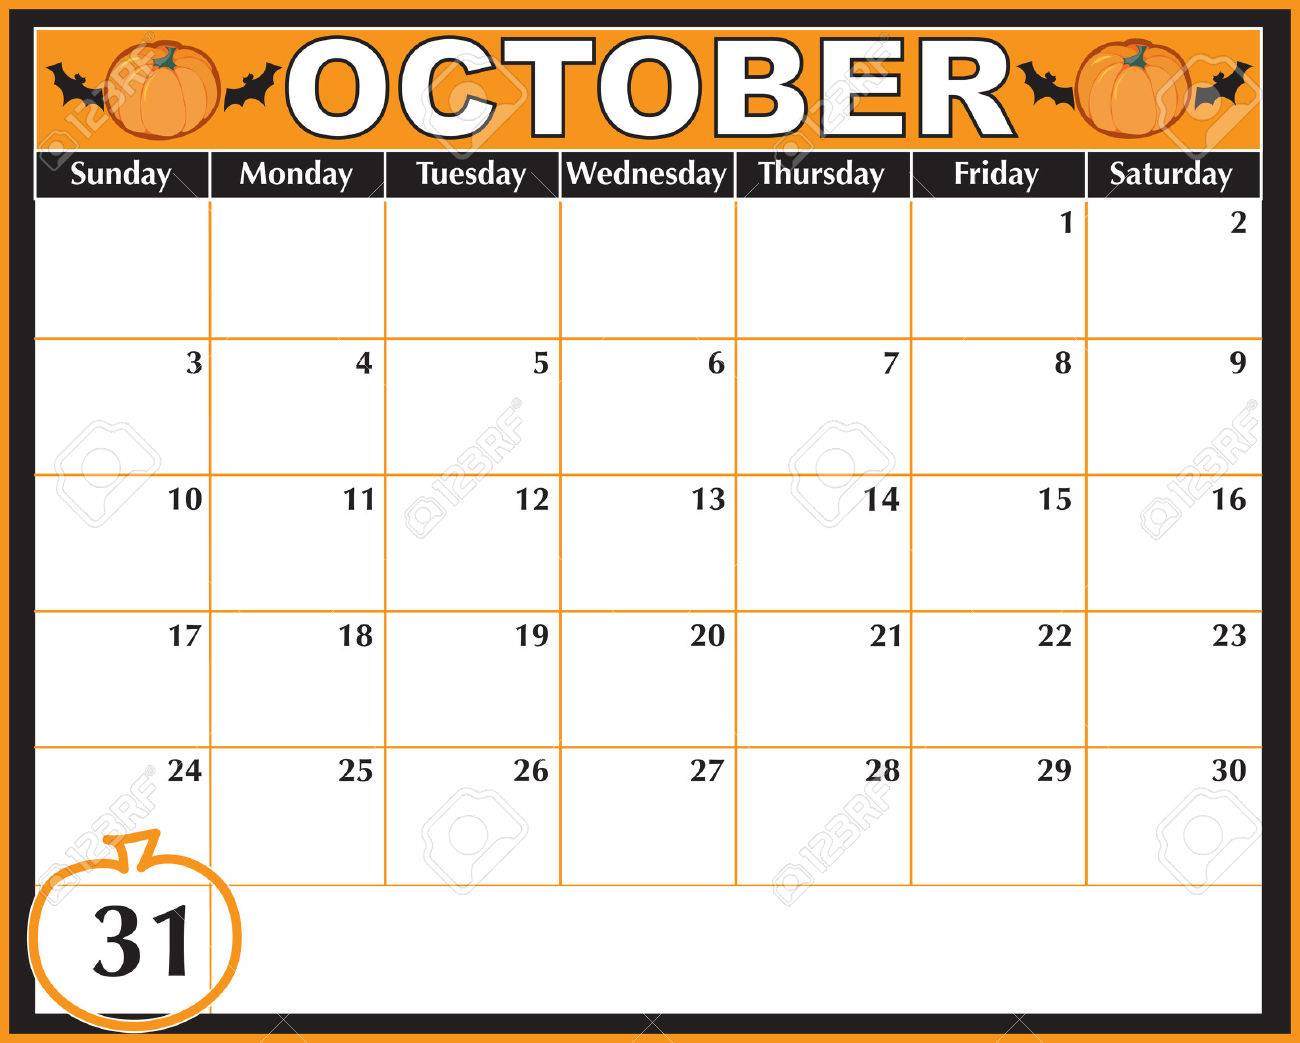 an october calendar showing the 31st prominently stock vector 6075687 - Why Is Halloween On The 31st Of October